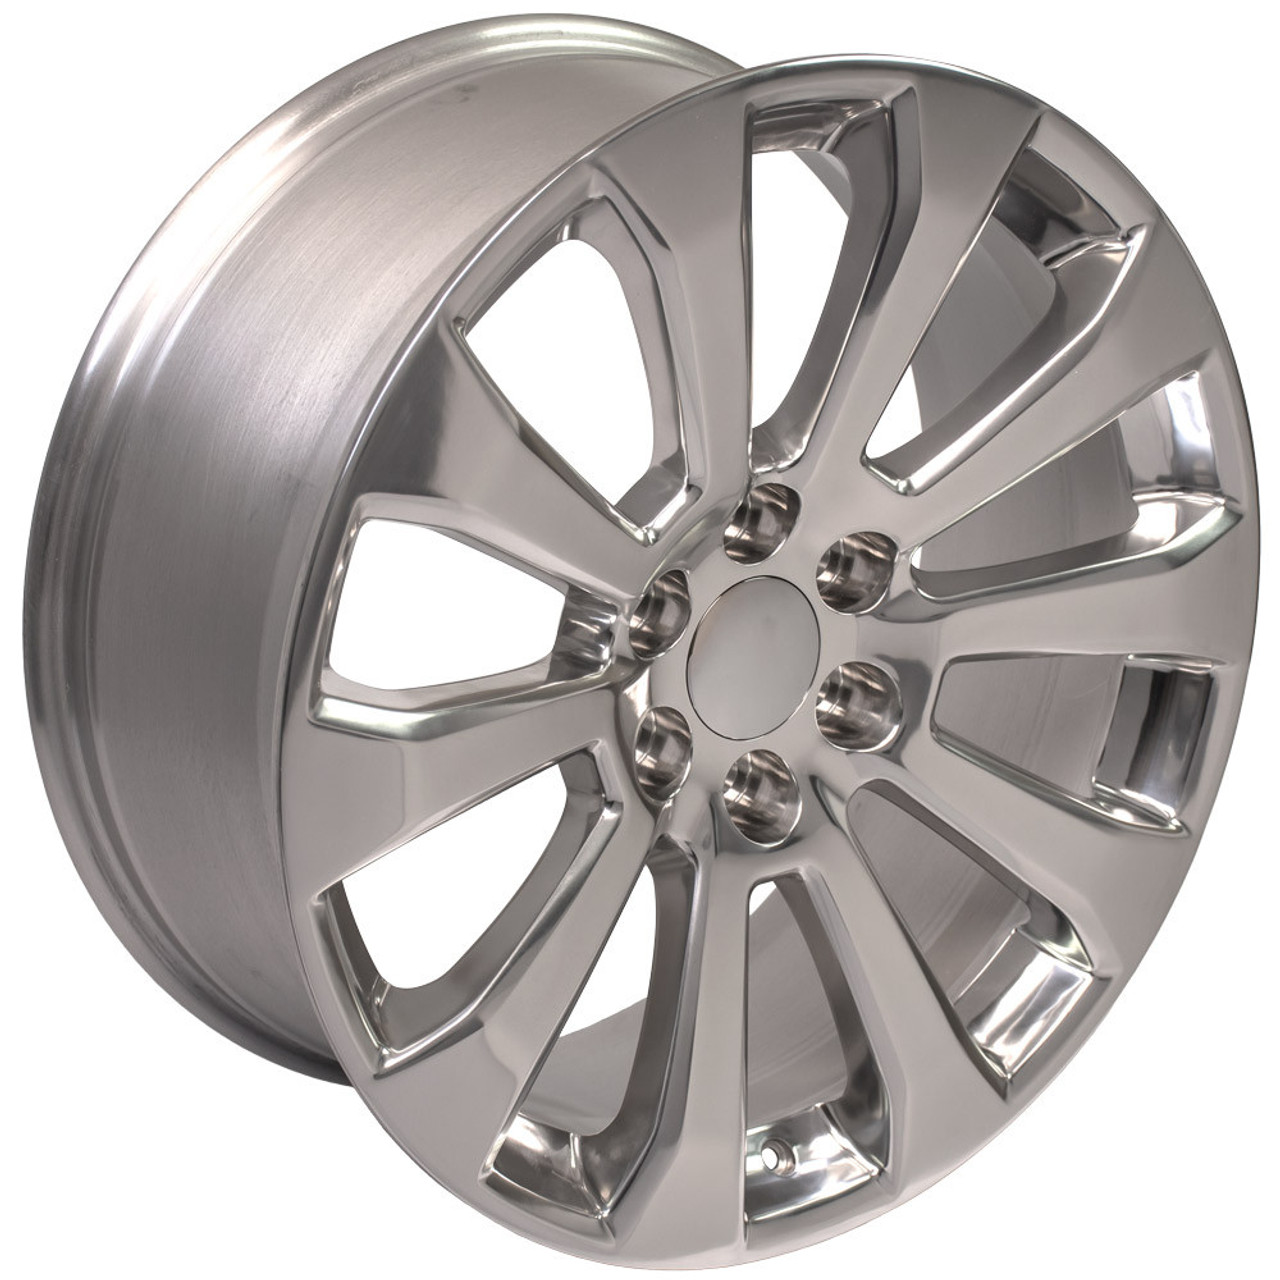 "Polished 22"" High Country Style Ten Spoke Wheels for Chevy Silverado, Tahoe, Suburban - New Set of 4"